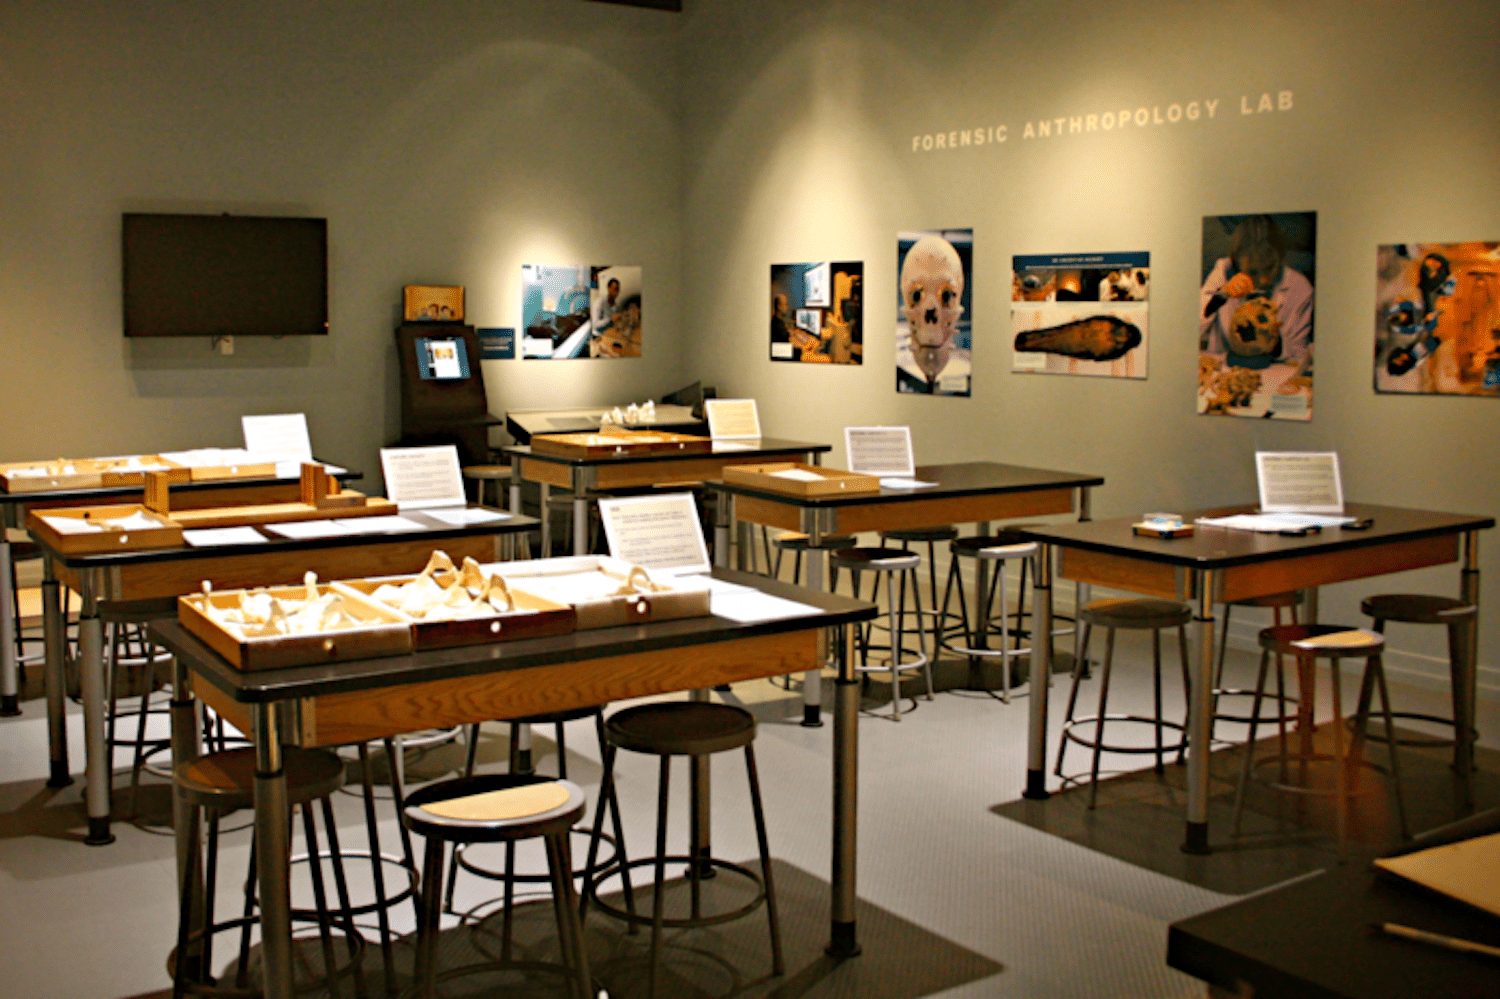 Forensic Anthropology Lab at the National Museum of Natural History, Smithsonian Institute, Washington D.C.